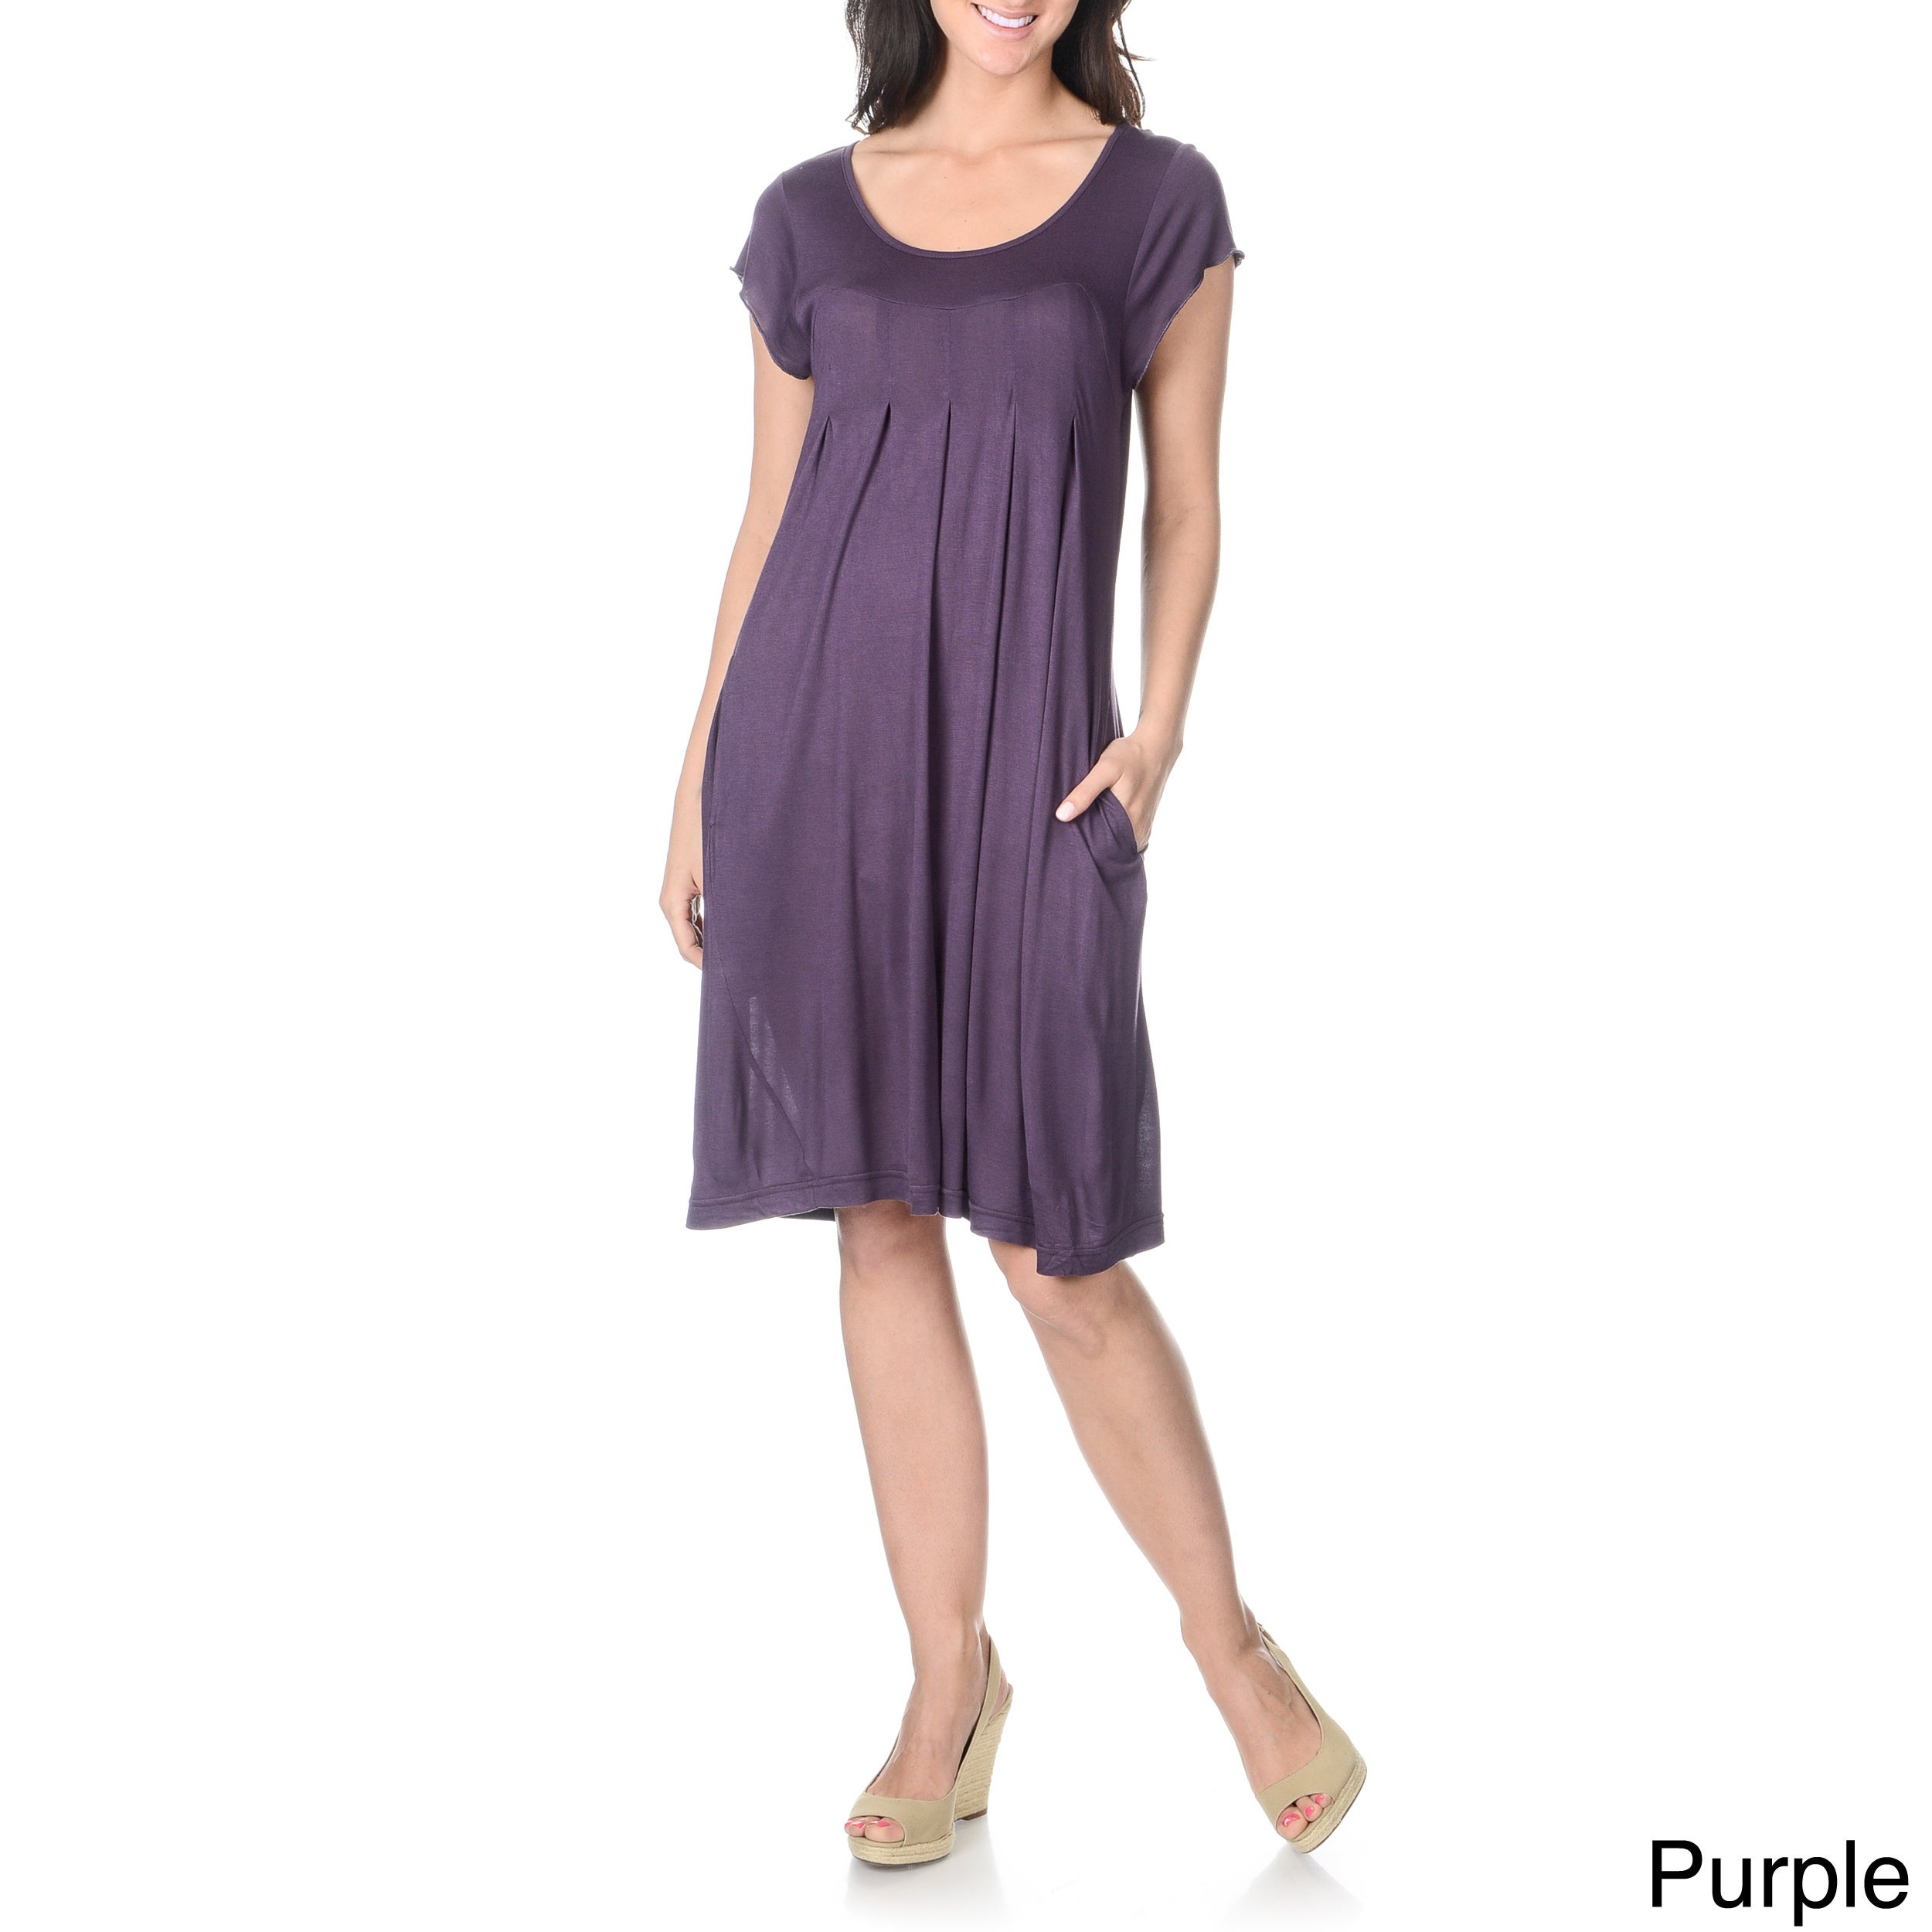 Awesome 92% Polyester, 8% Spandex Stretchy, Jersey Knit Fabric Lace Panel Down The Front Of The Bust With A Small Keyhole At The Top Elasticized Waist Dress Is Unlined And Length Is Several Inches Above The Knee Brand New With Jon &amp Anna Tags!